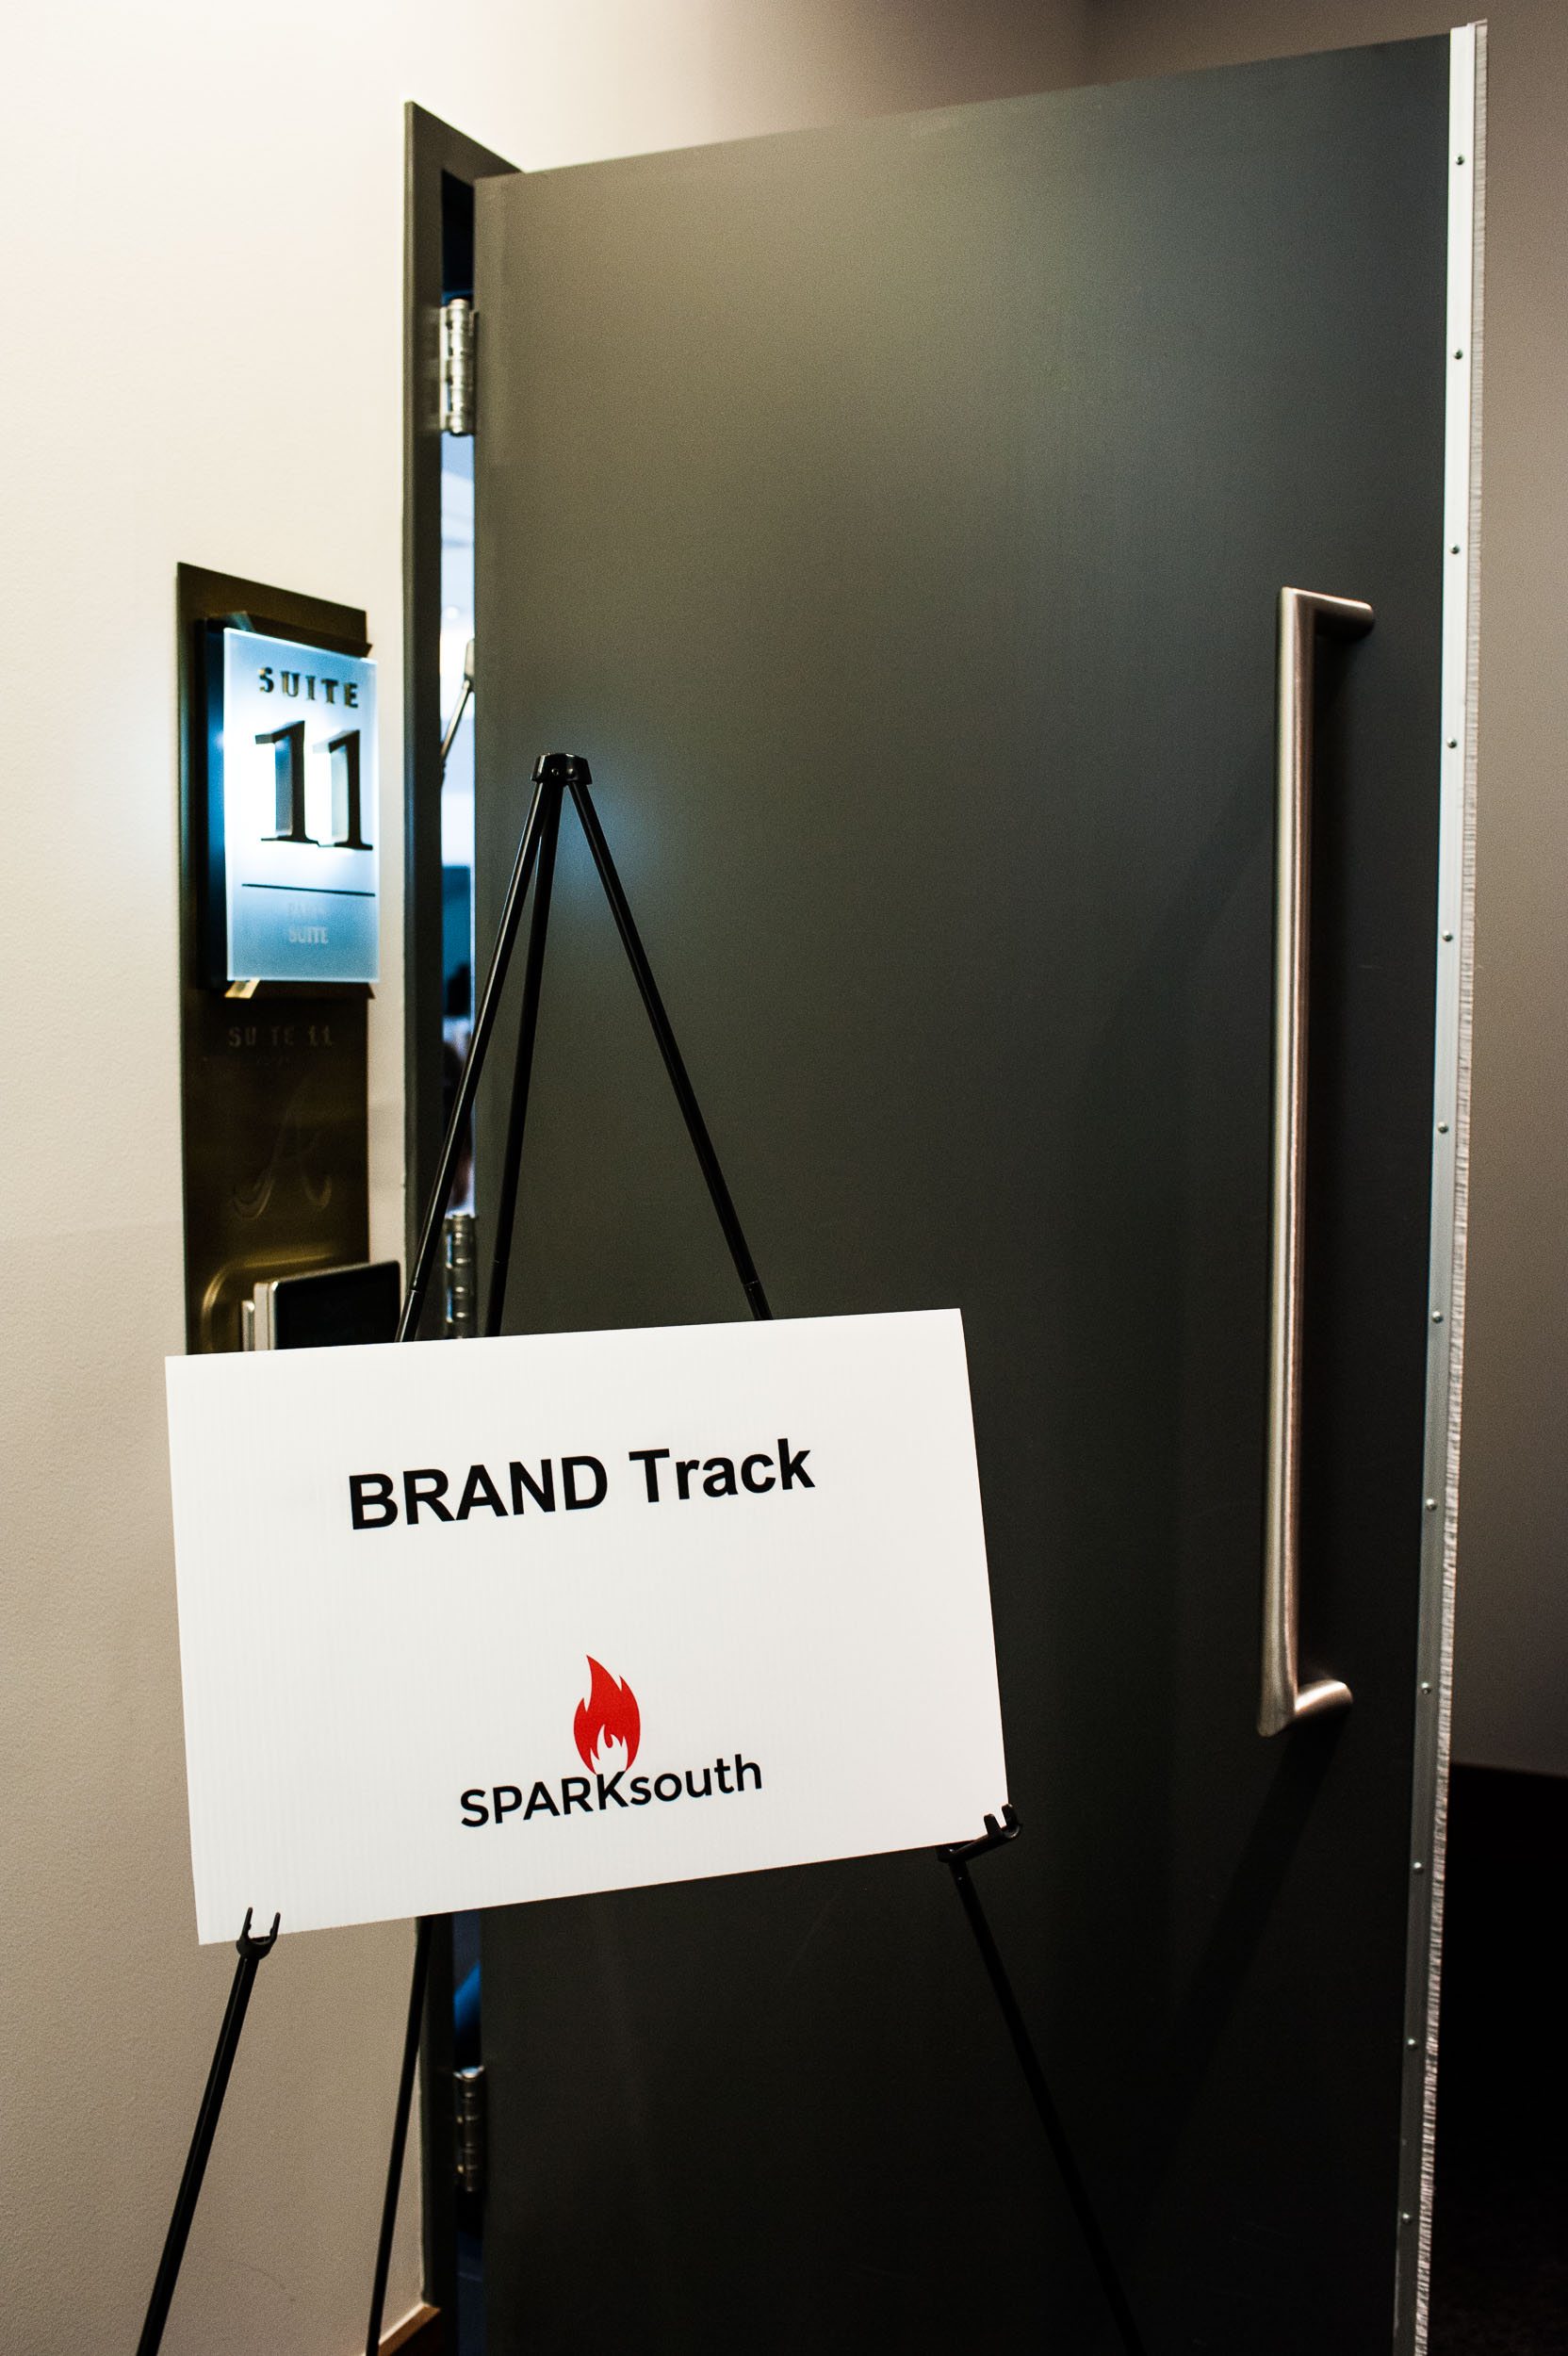 SPARKsouth ©jasonseagle (Web Ready)_056.JPG